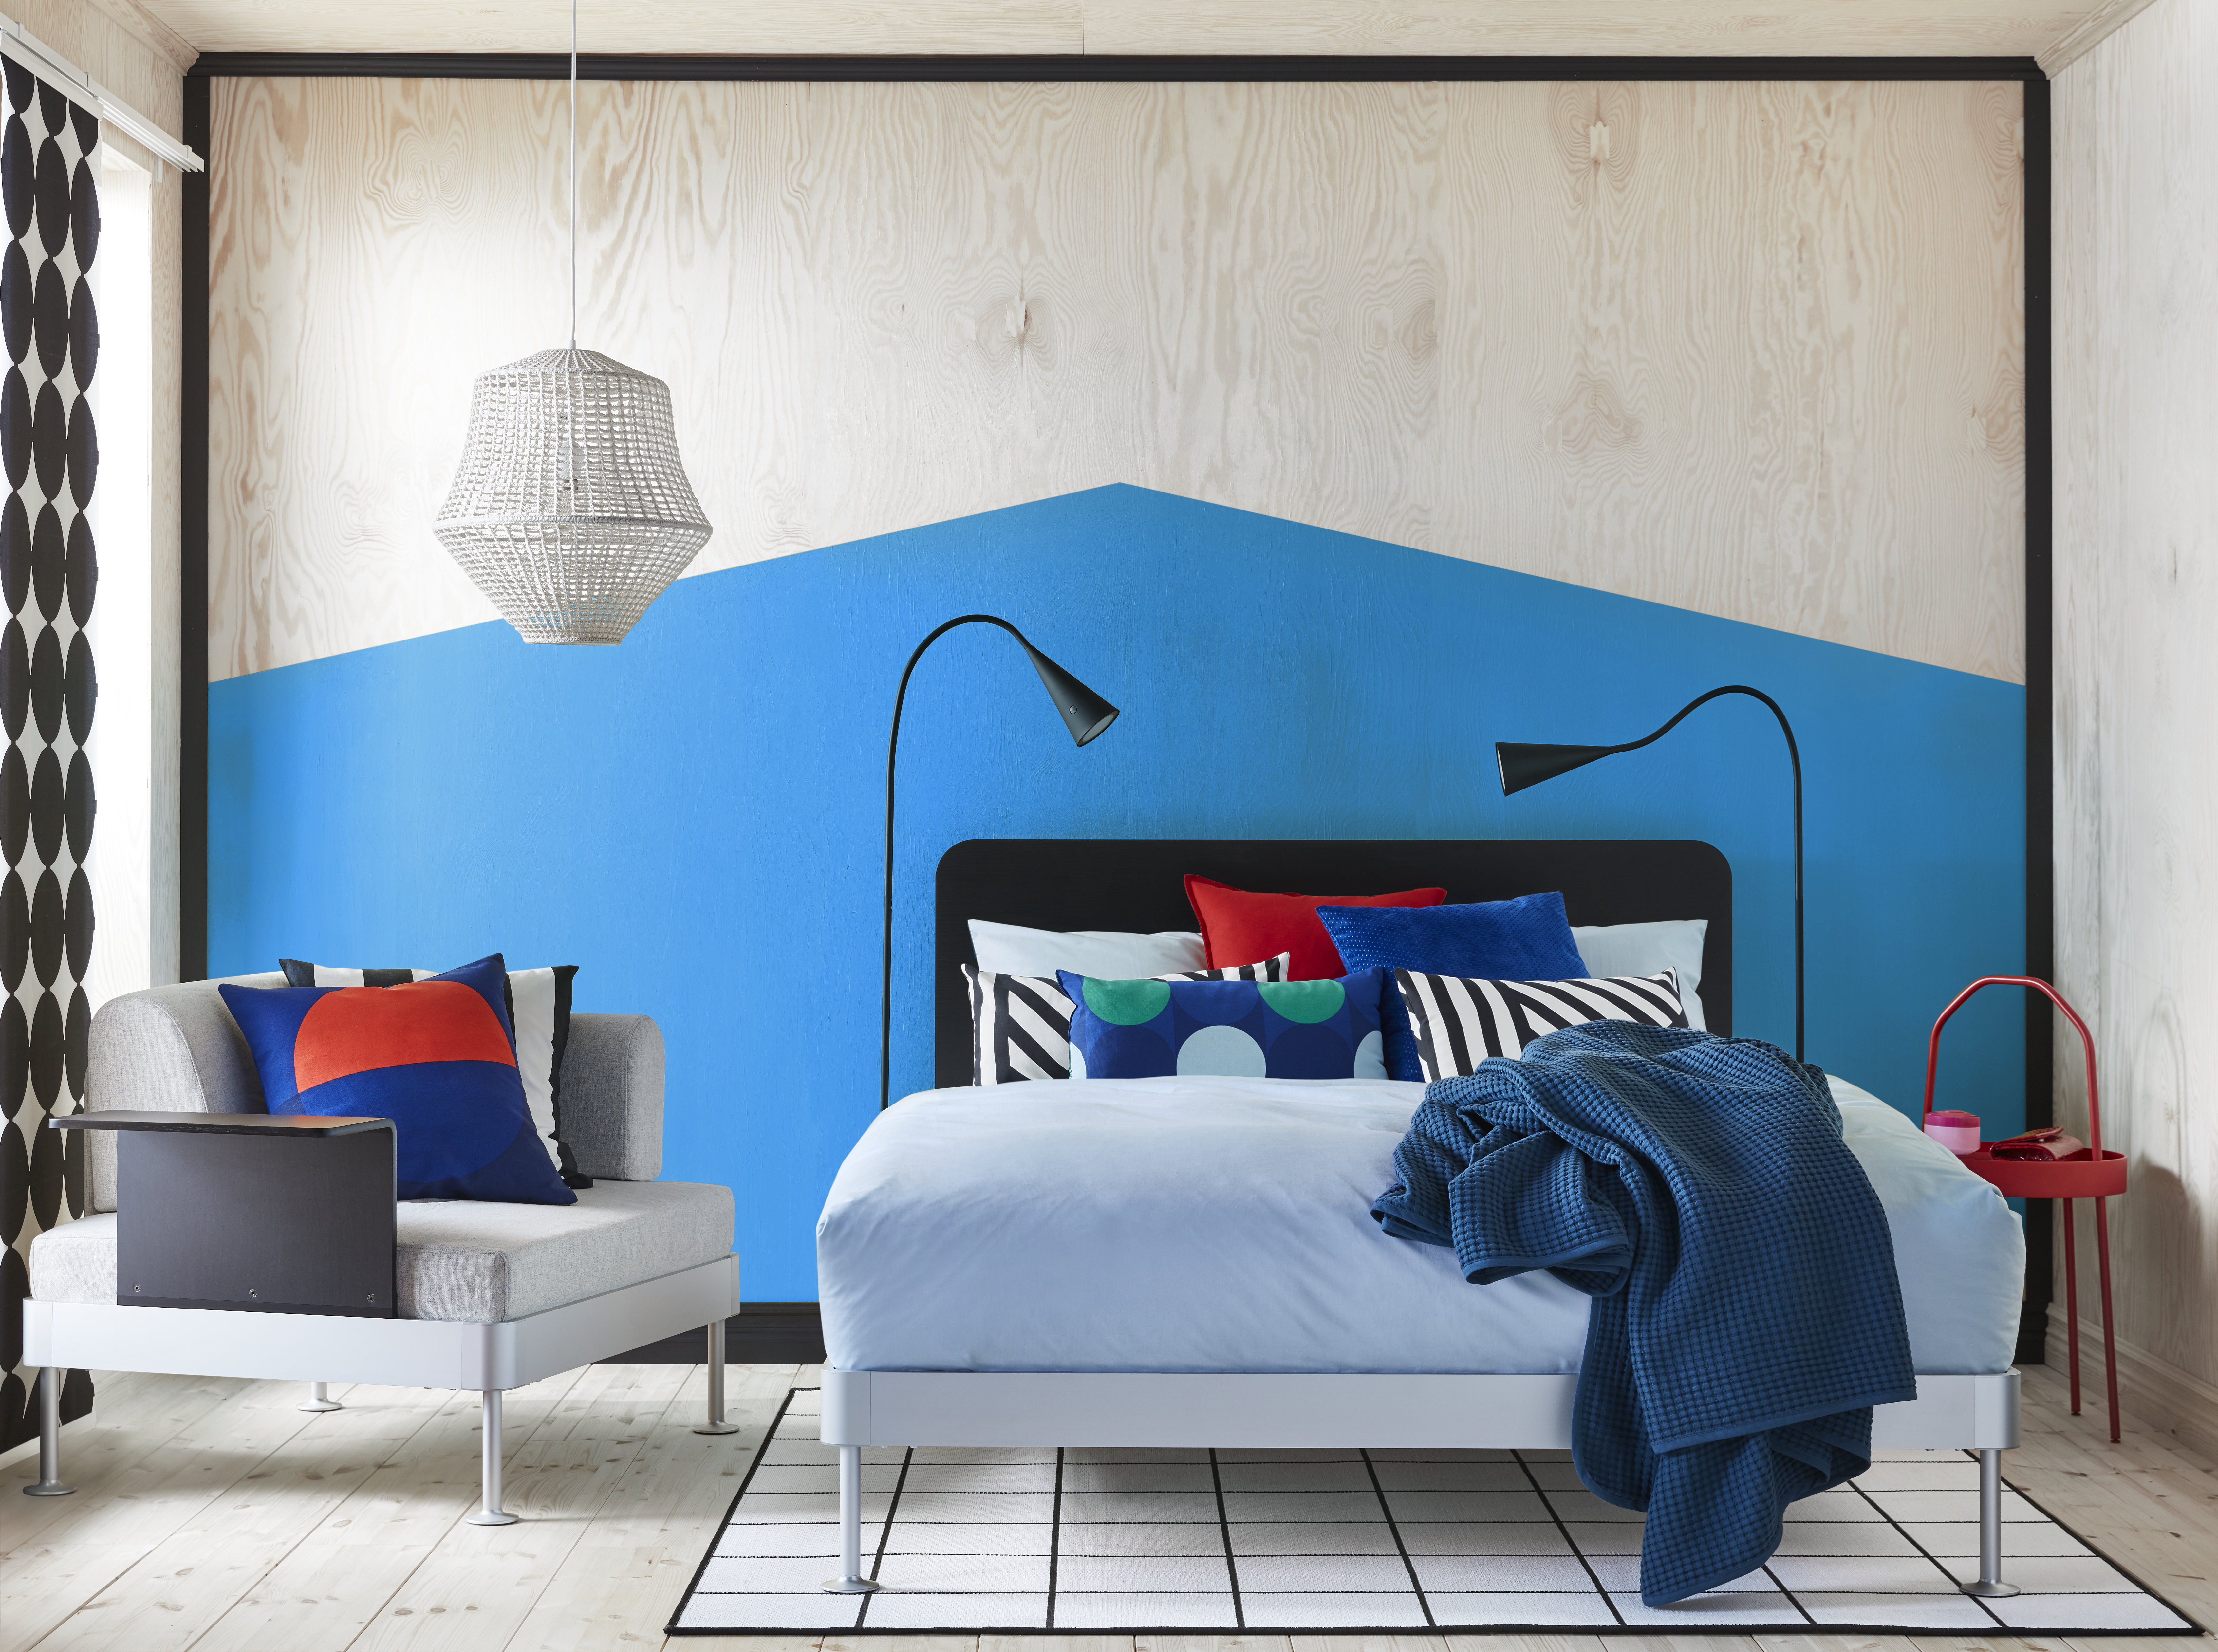 Platform bed with colorful pillows